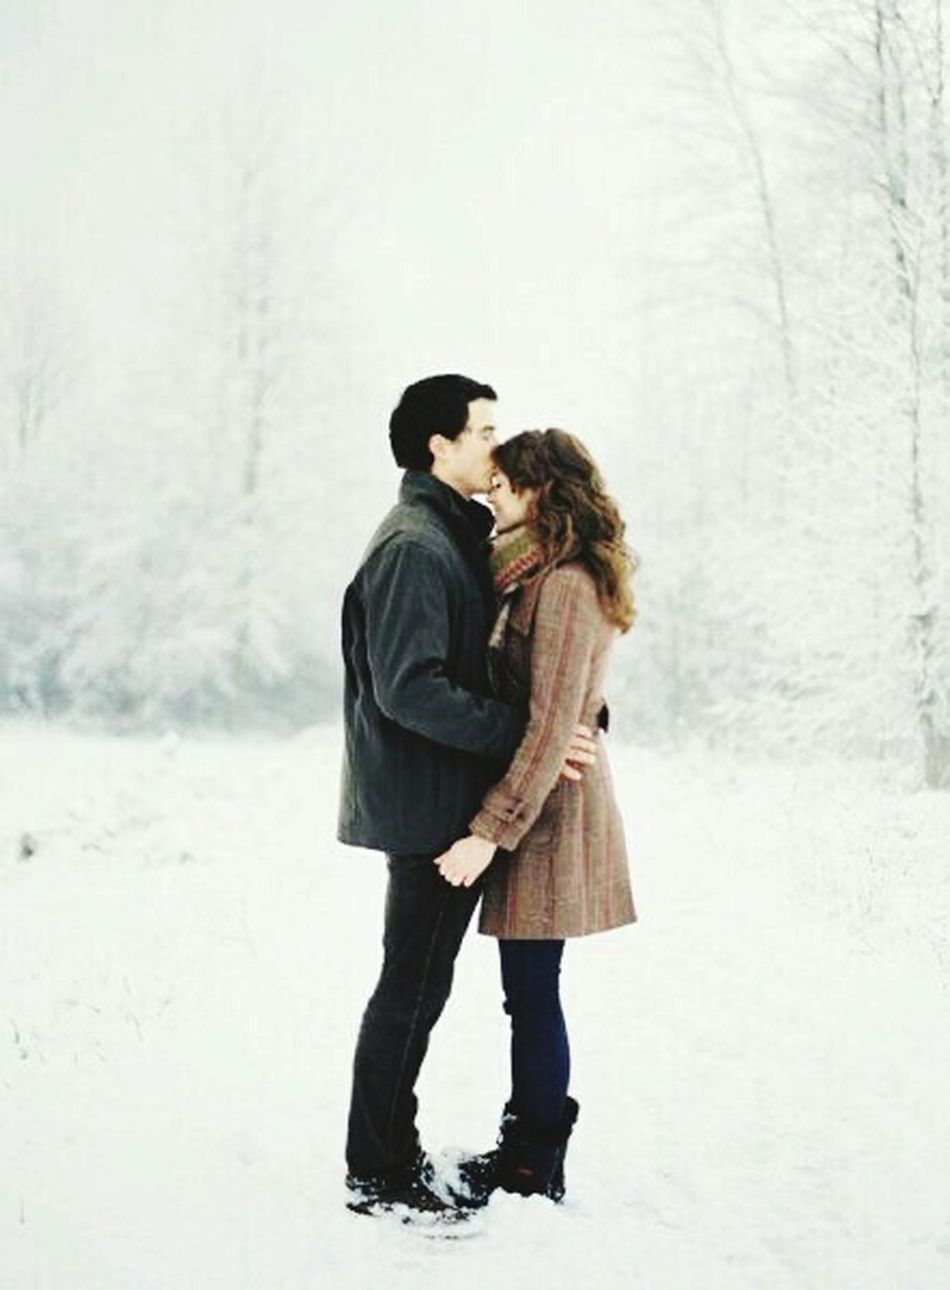 When you feel the Warmth of his Lips on your Forhead in -20 degree of Winter . When you feel the August in the coldest wintertime ♡ Love Each Other and never forget your lover and The World Need More Kisses ♡